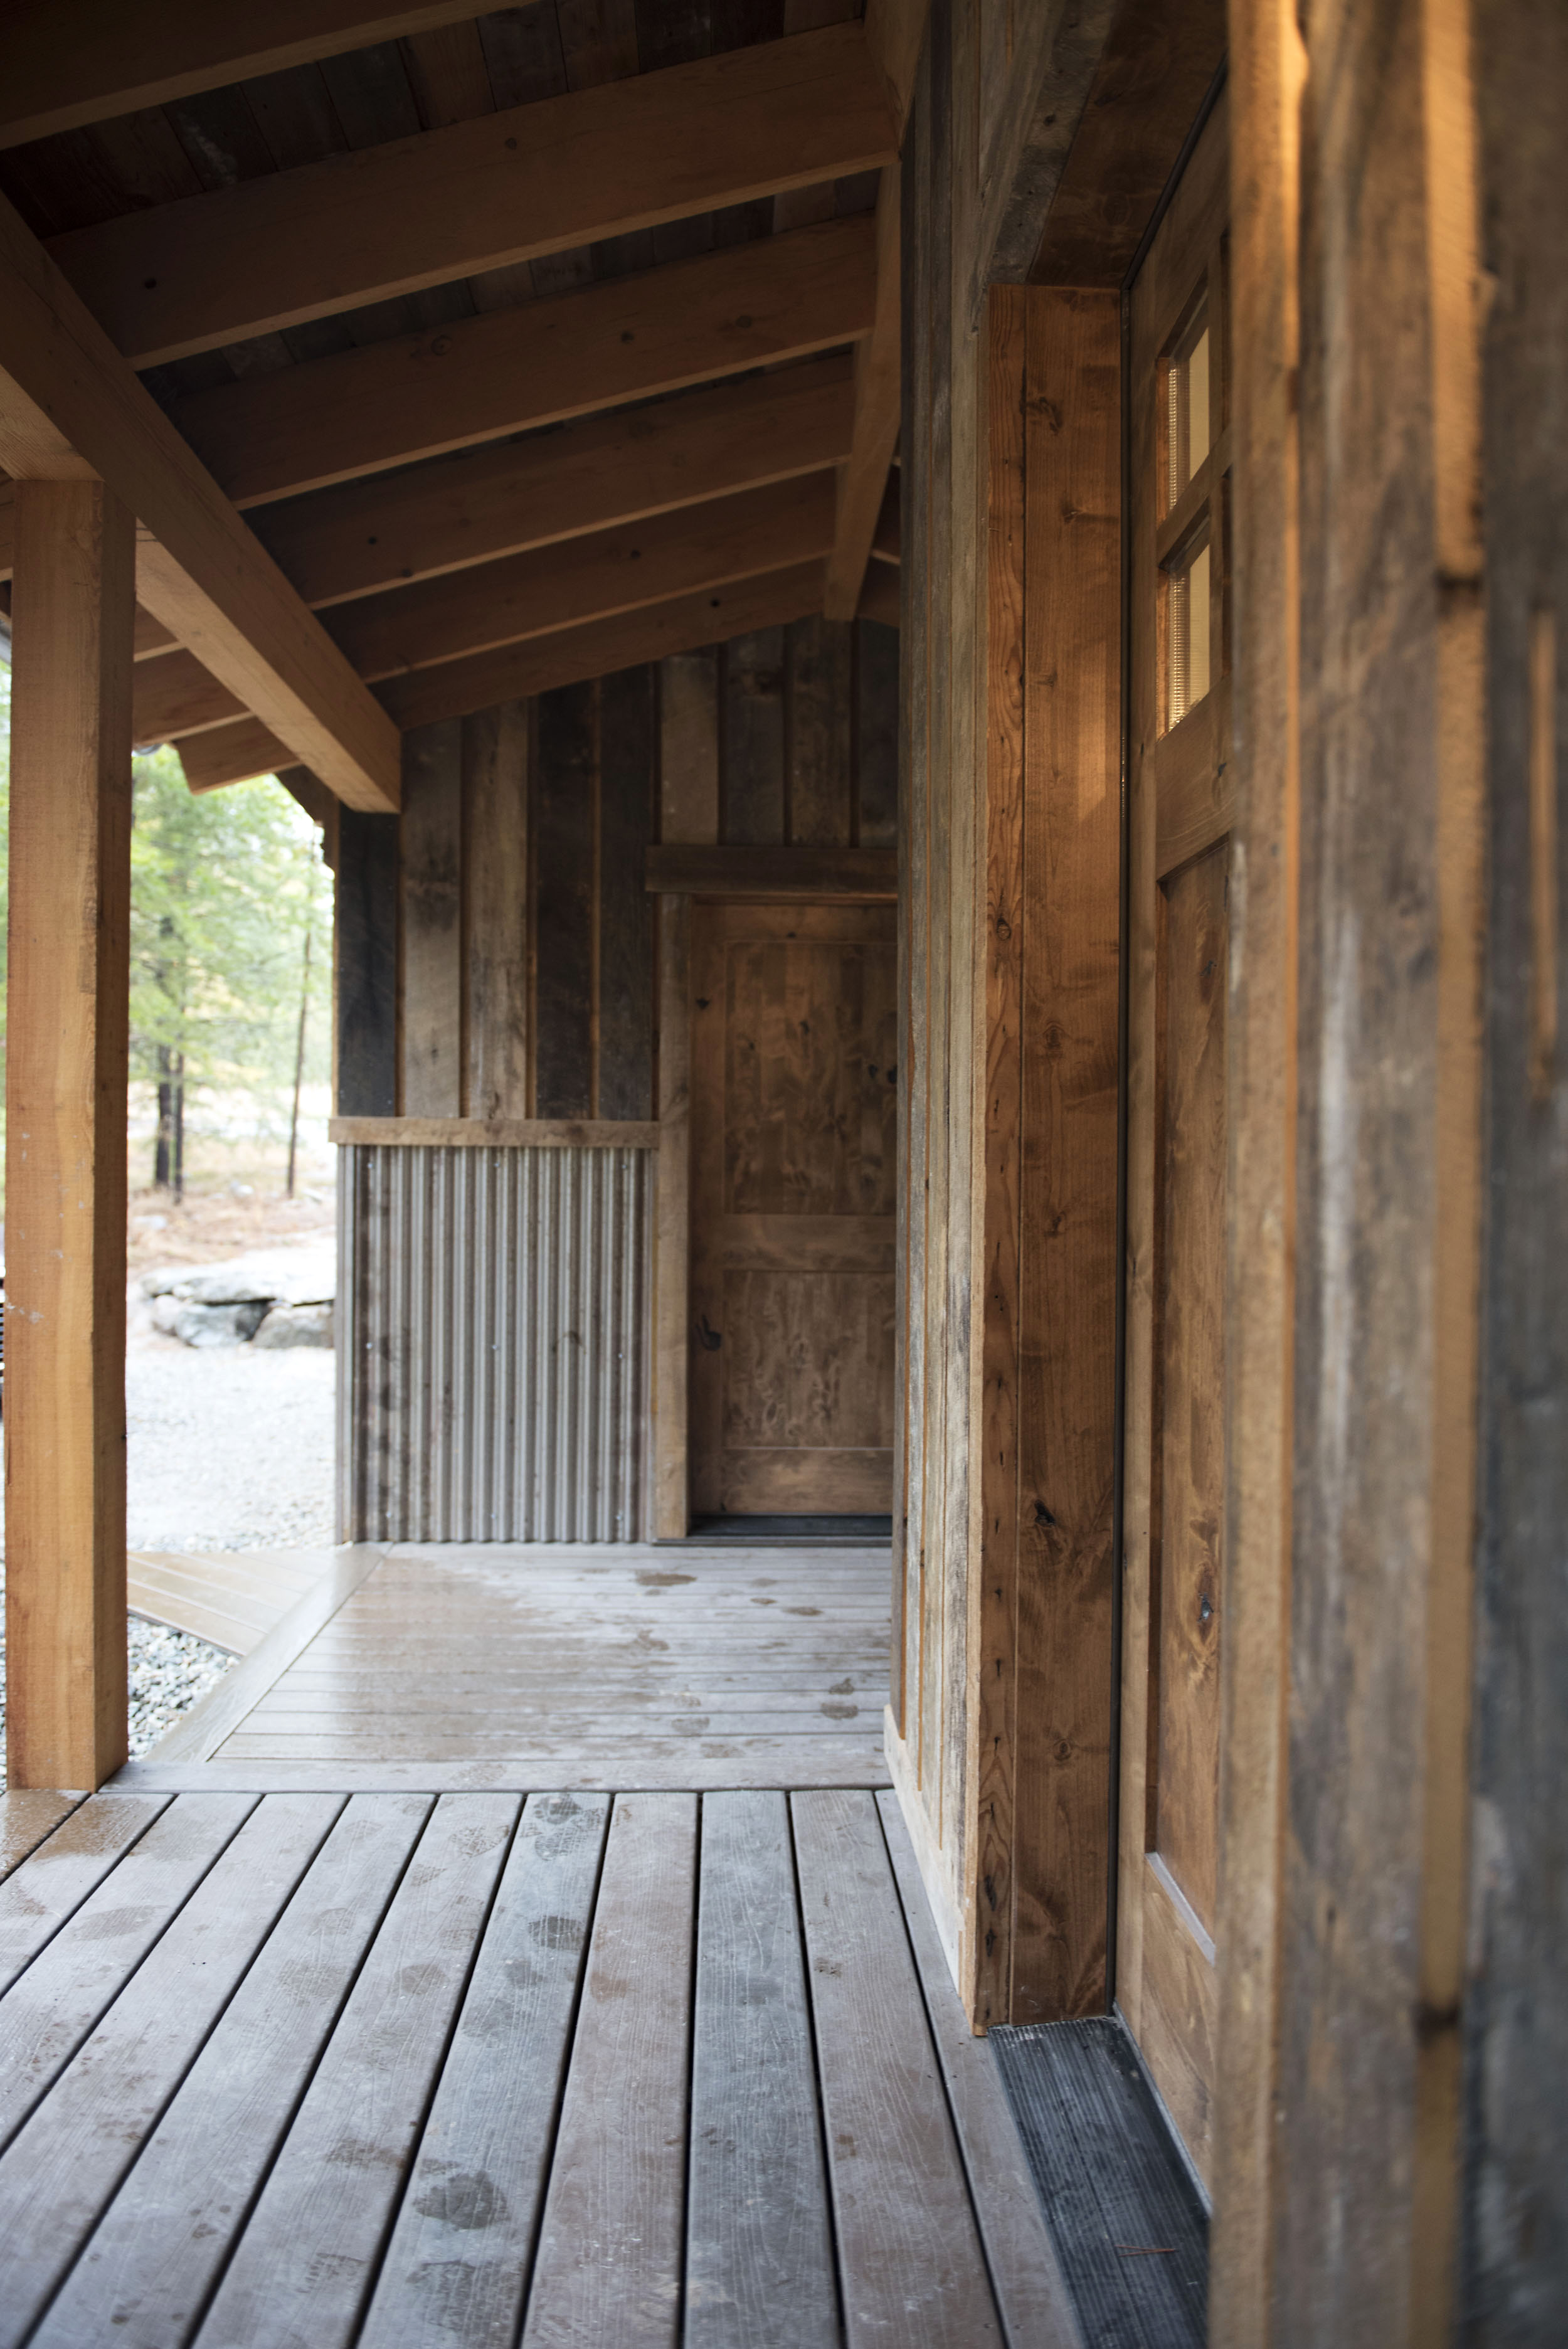 The mix of wood tones in the reclaimed siding makes it easy to introduce other wood accents like doors, beams, and decking.